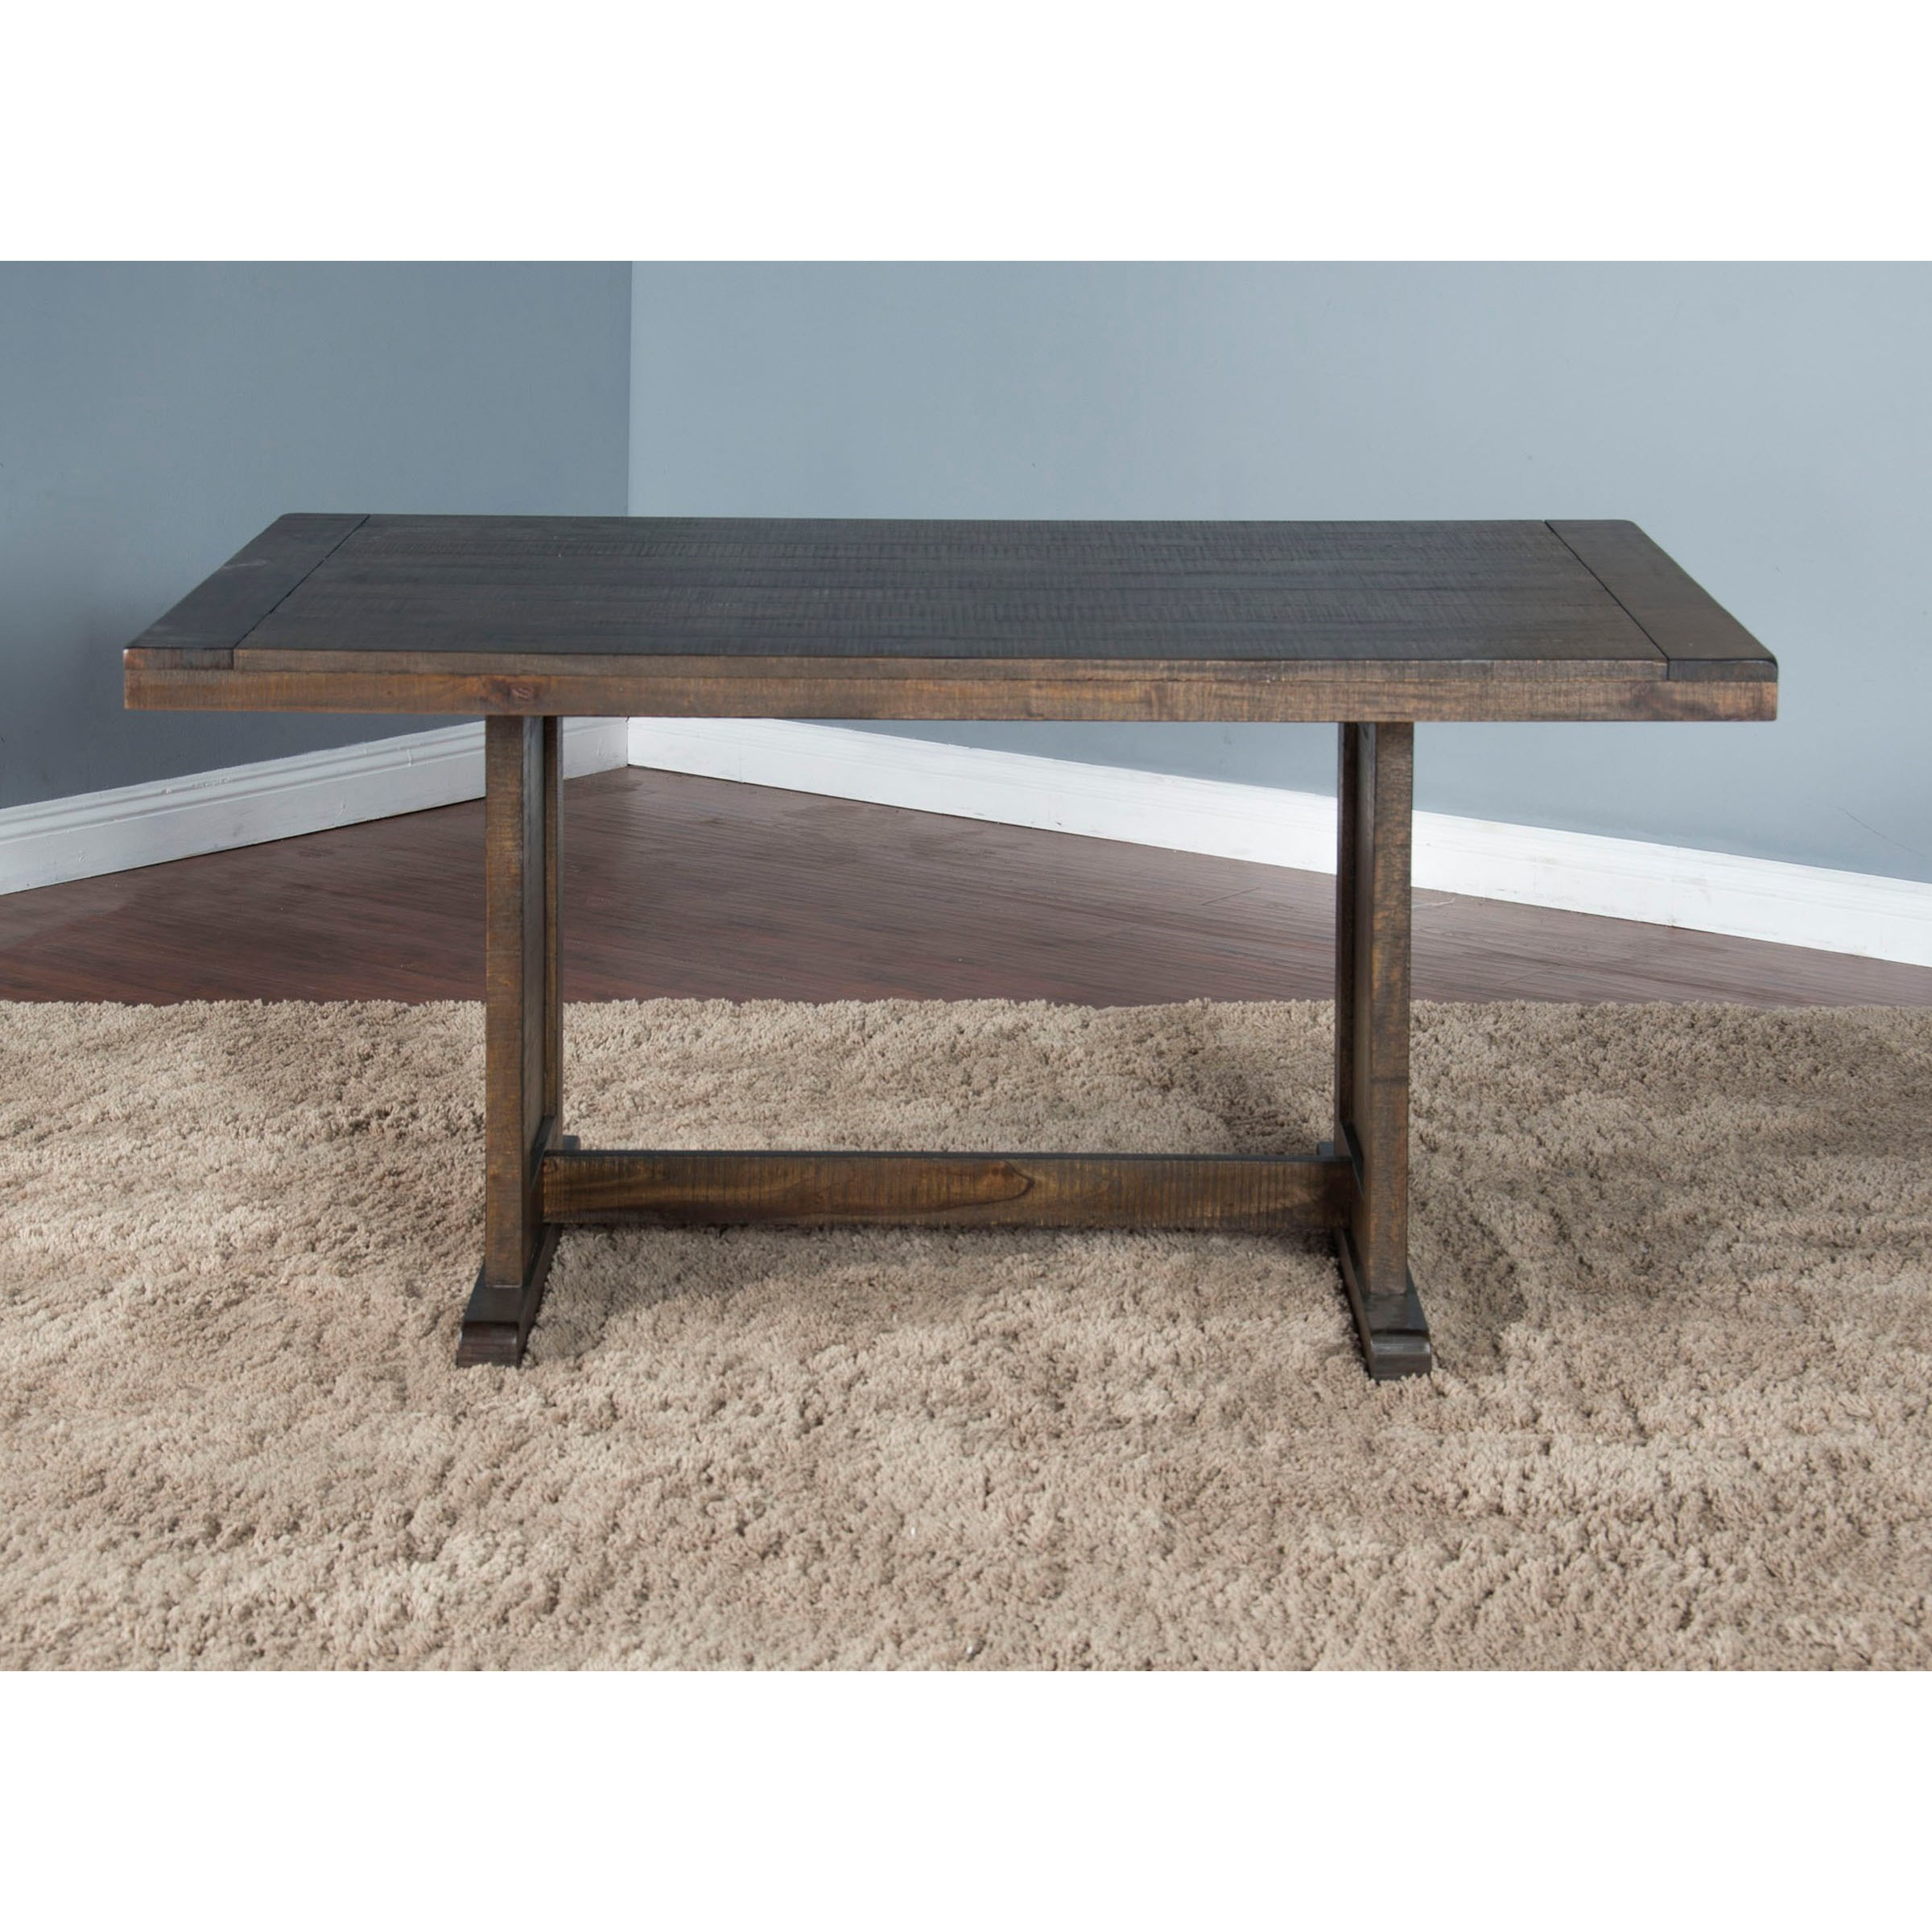 Sunny Designs Homestead Rustic Style Table with Trestle ...